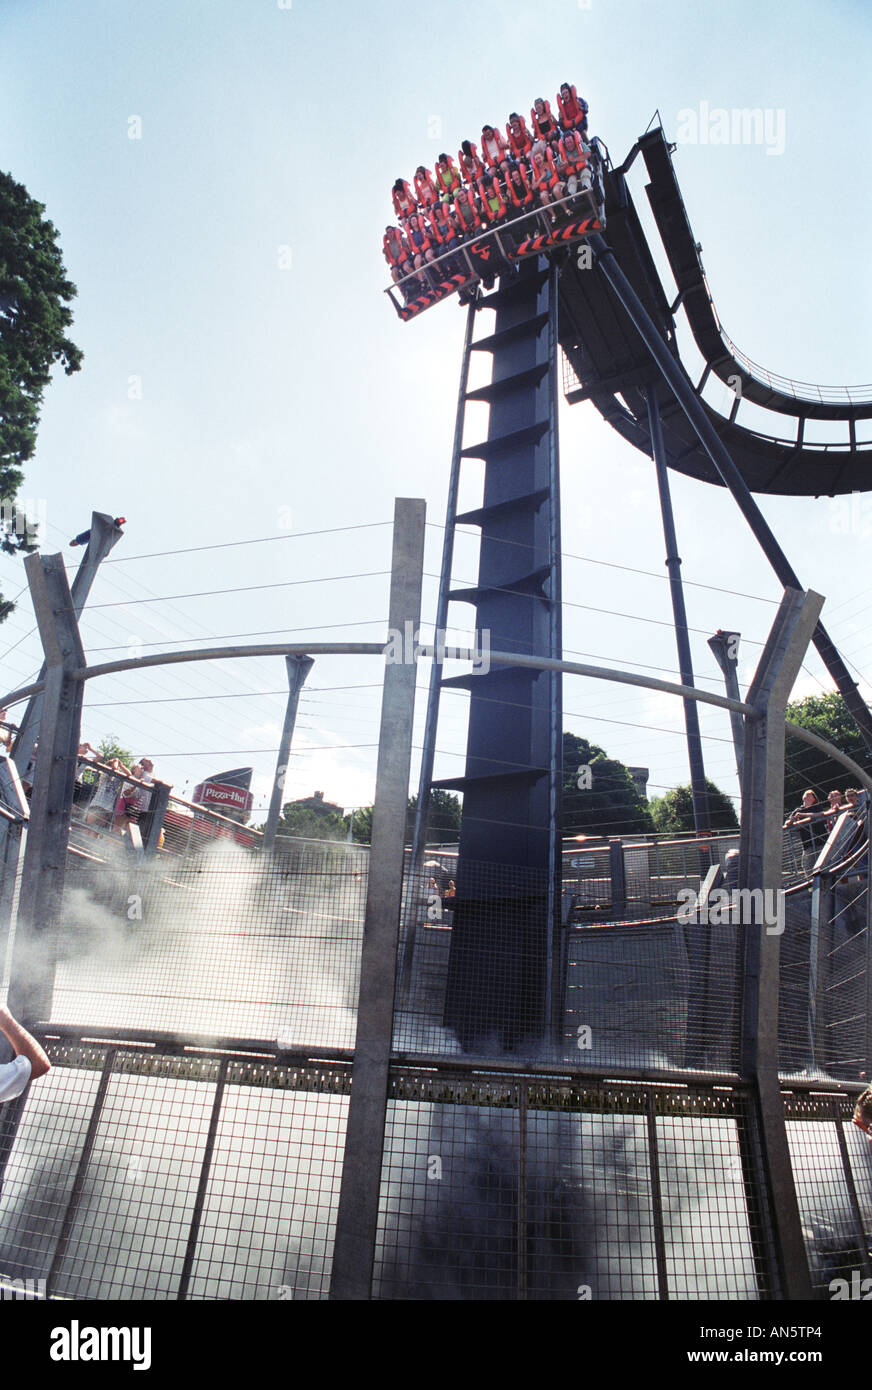 The Oblivion ride at Alton Towers amusement park in Staffordshire UK - Stock Image